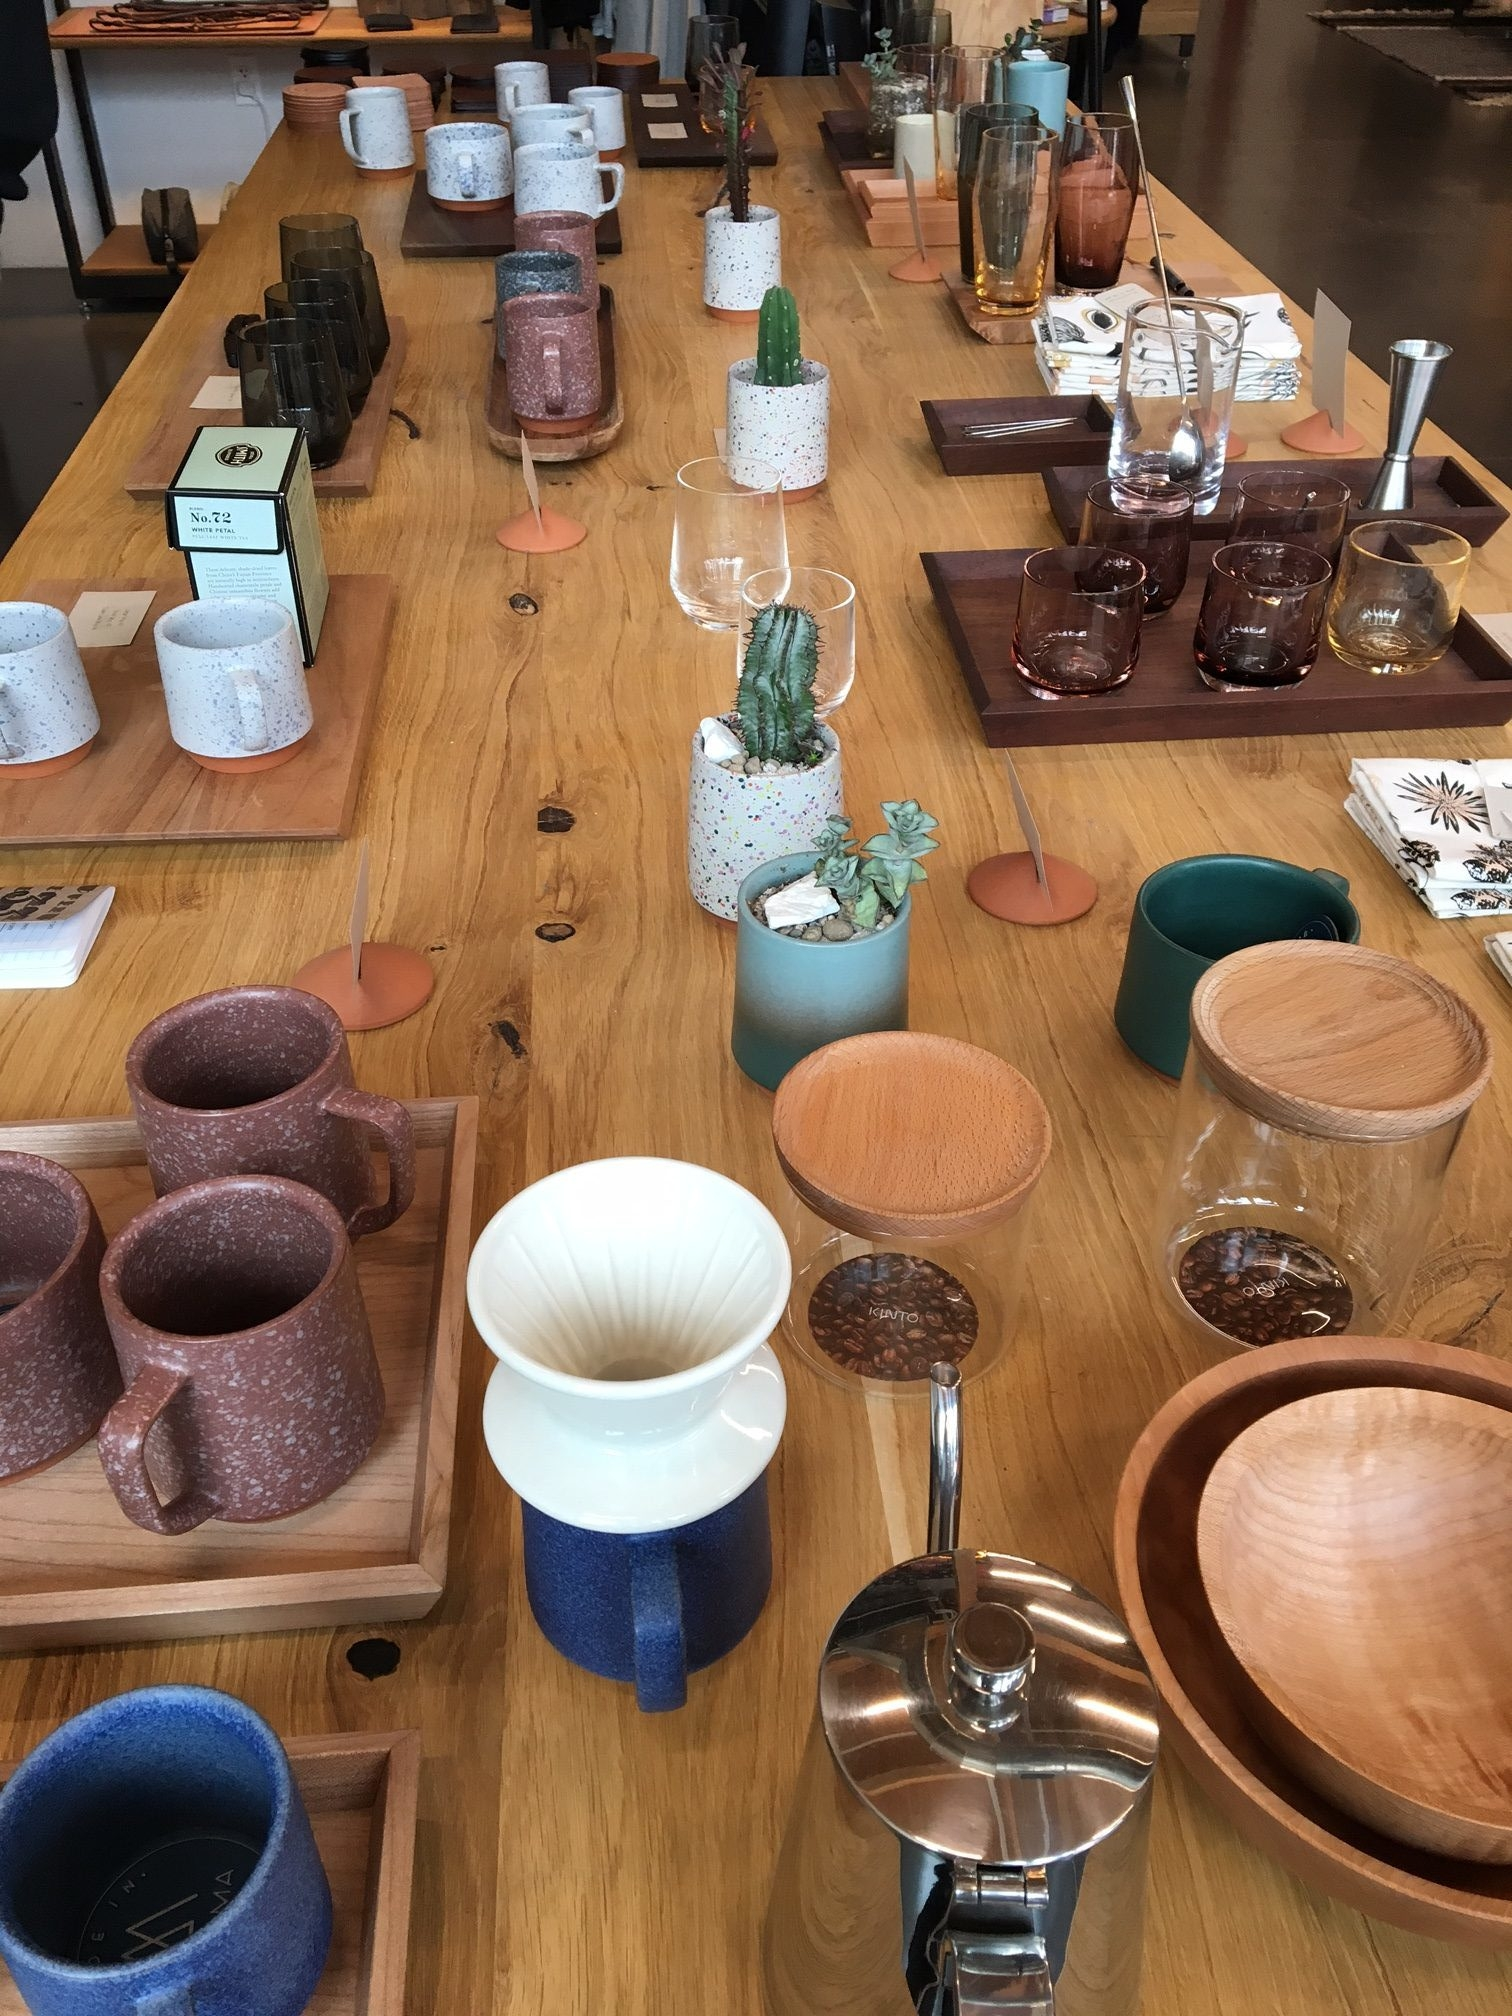 We swung by  Tanner Goods , a store that features high quality leather goods that are crafted in Portland. However, what caught my attention were all the other goods and wares in the store. It was a bit pricier than I had hoped, but it was great to browse.